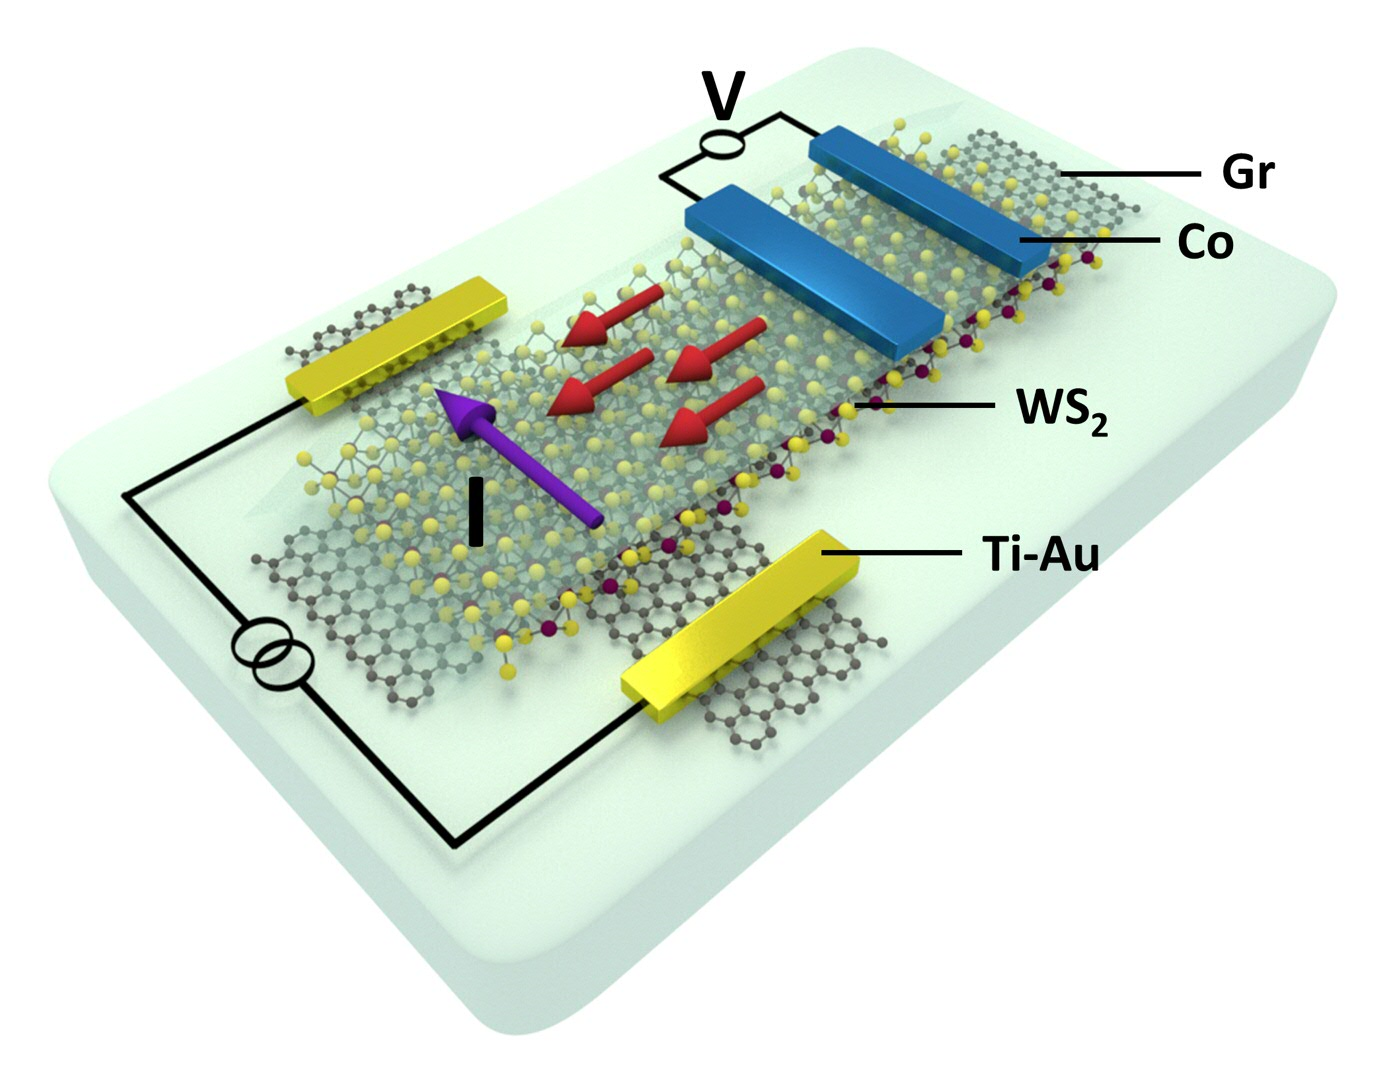 Schematics of the geometry of a nanodevice, used for observation of charge-to-spin conversion in a van der Waals heterostructure of graphene and WS2. The purple and red arrows show charge current and the generated spin accumulation, respectively.